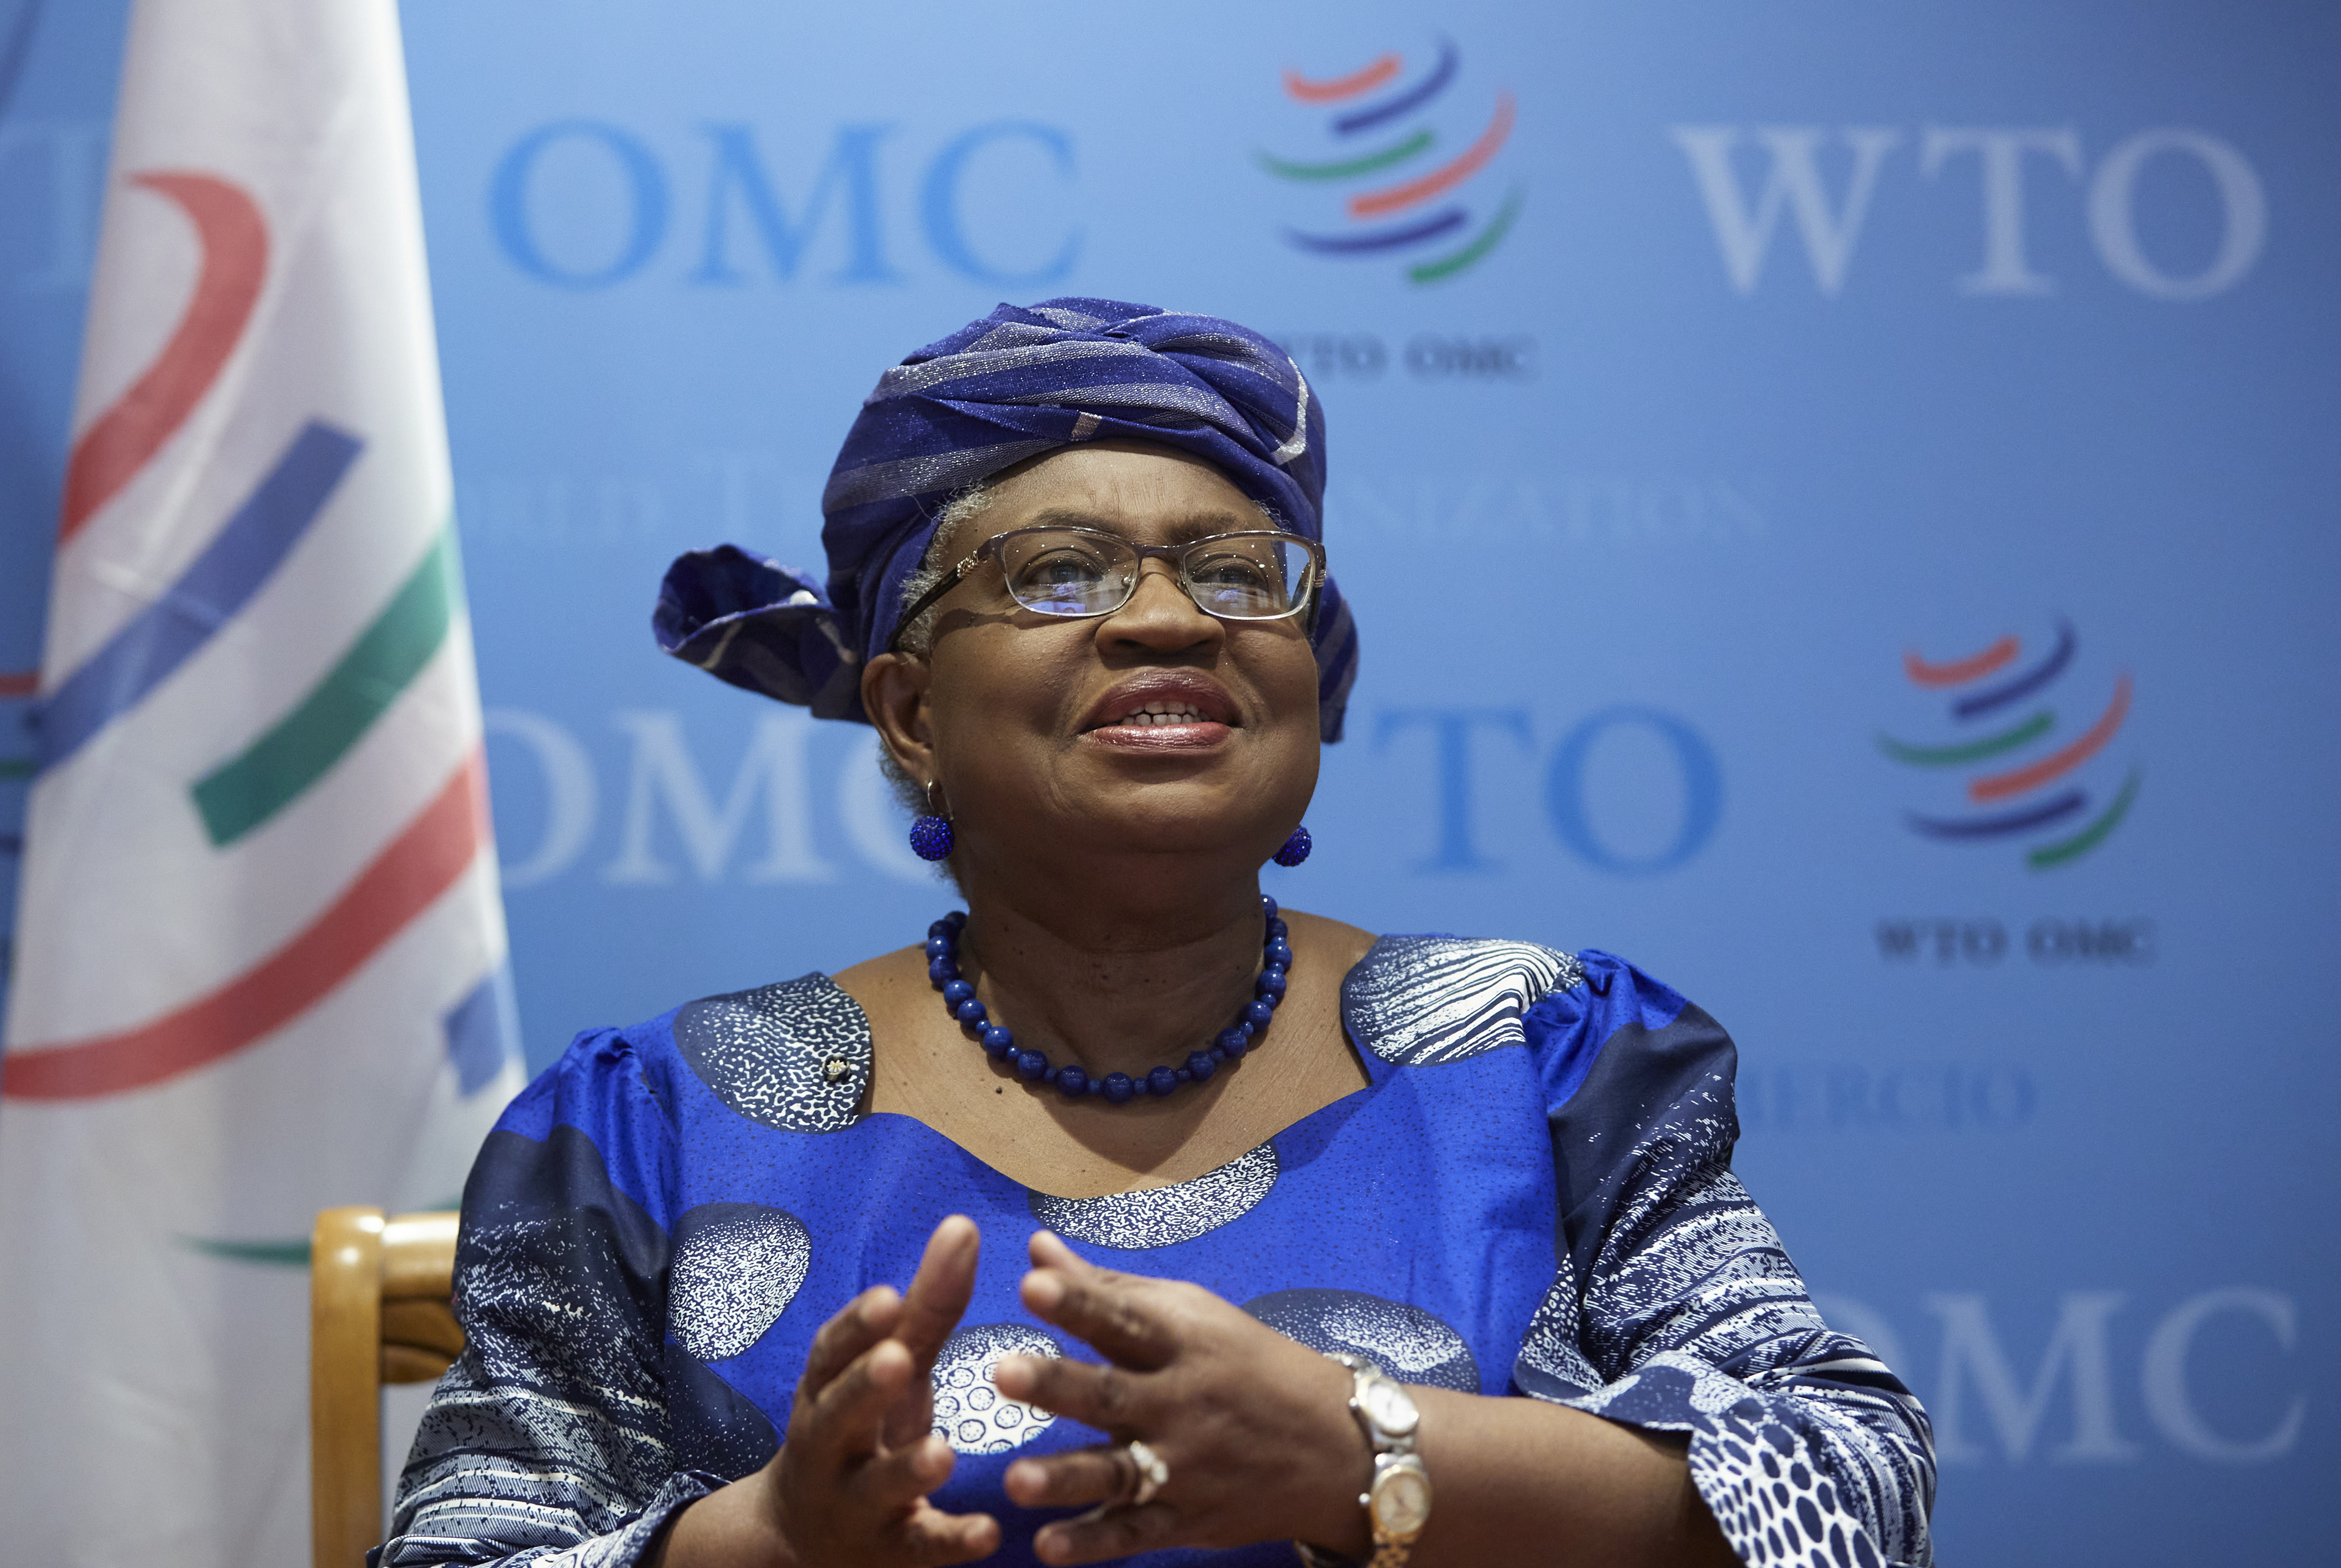 World Trade Organisation (WTO) Director-General Ngozi Okonjo-Iweala attends an interview with Reuters at the WTO headquarters in Geneva, Switzerland, April 12, 2021. REUTERS/Denis Balibouse